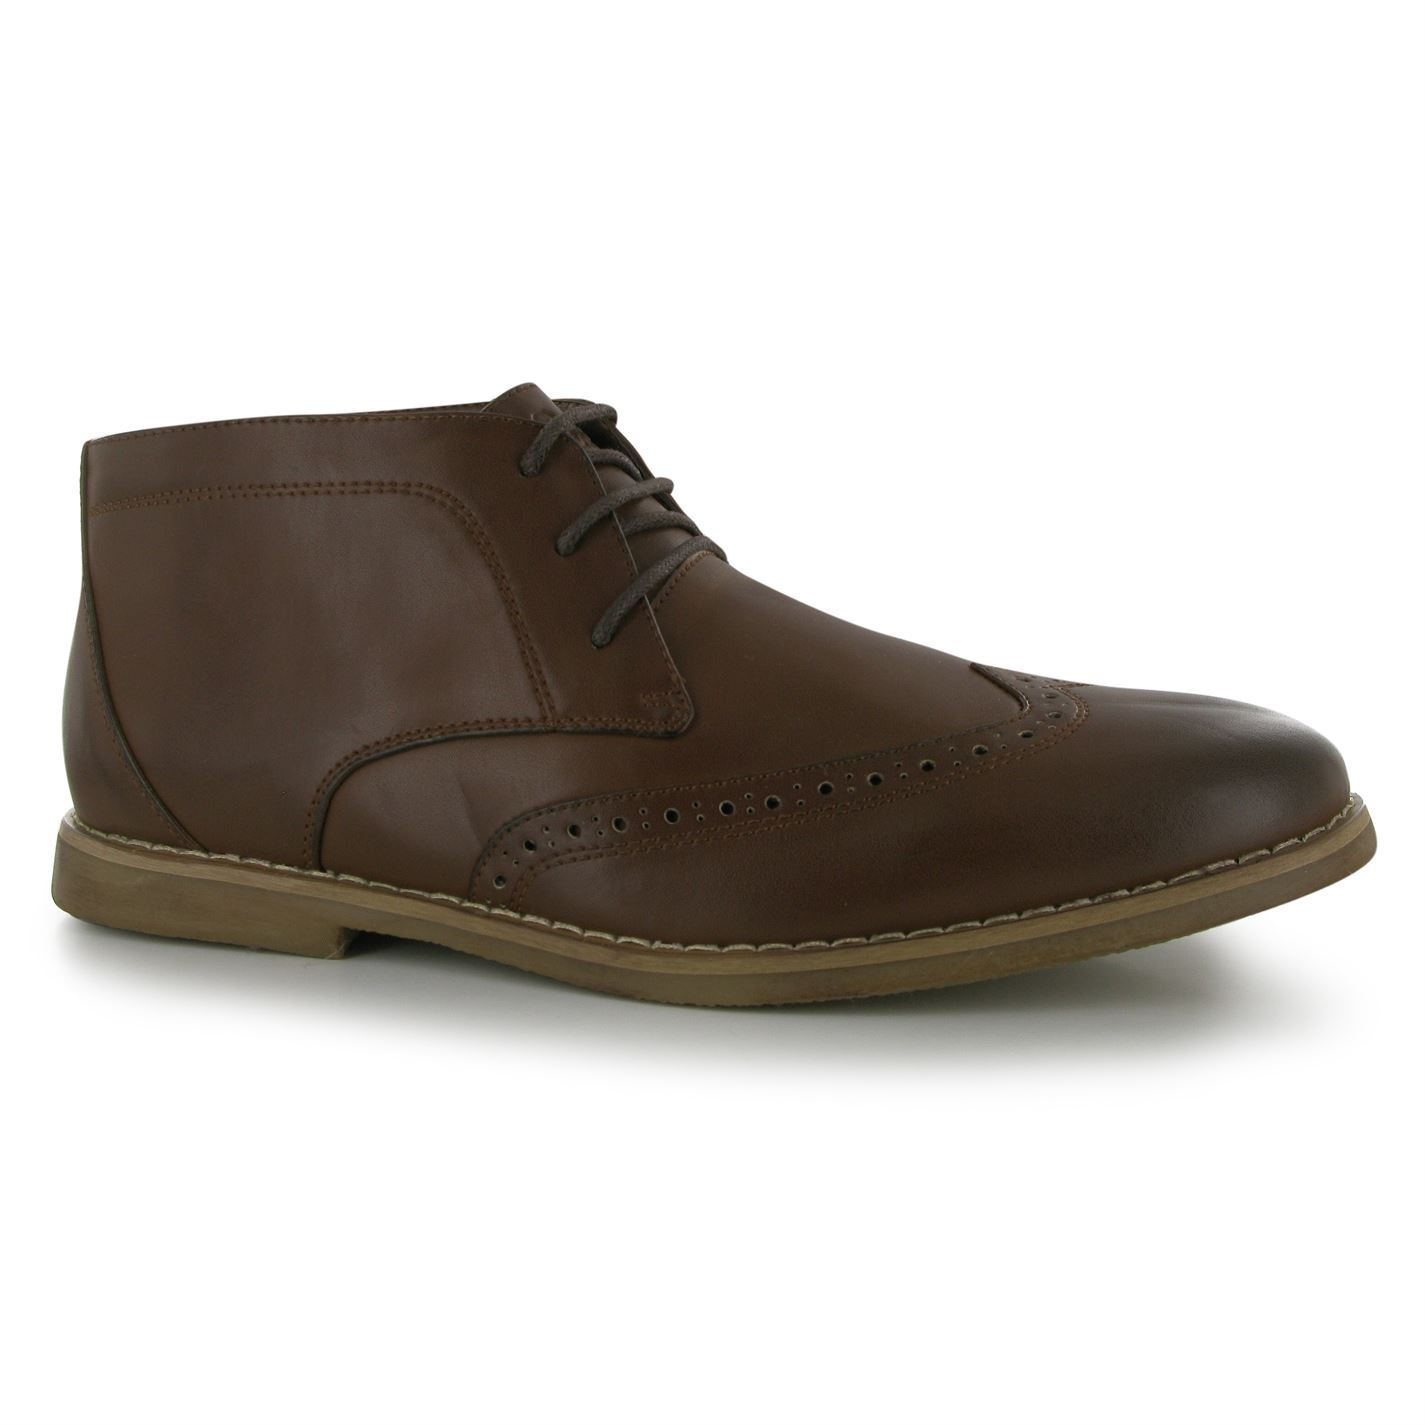 Lee Cooper Mens C Desert Brogue Boots Lace Up Shoes Casual ...